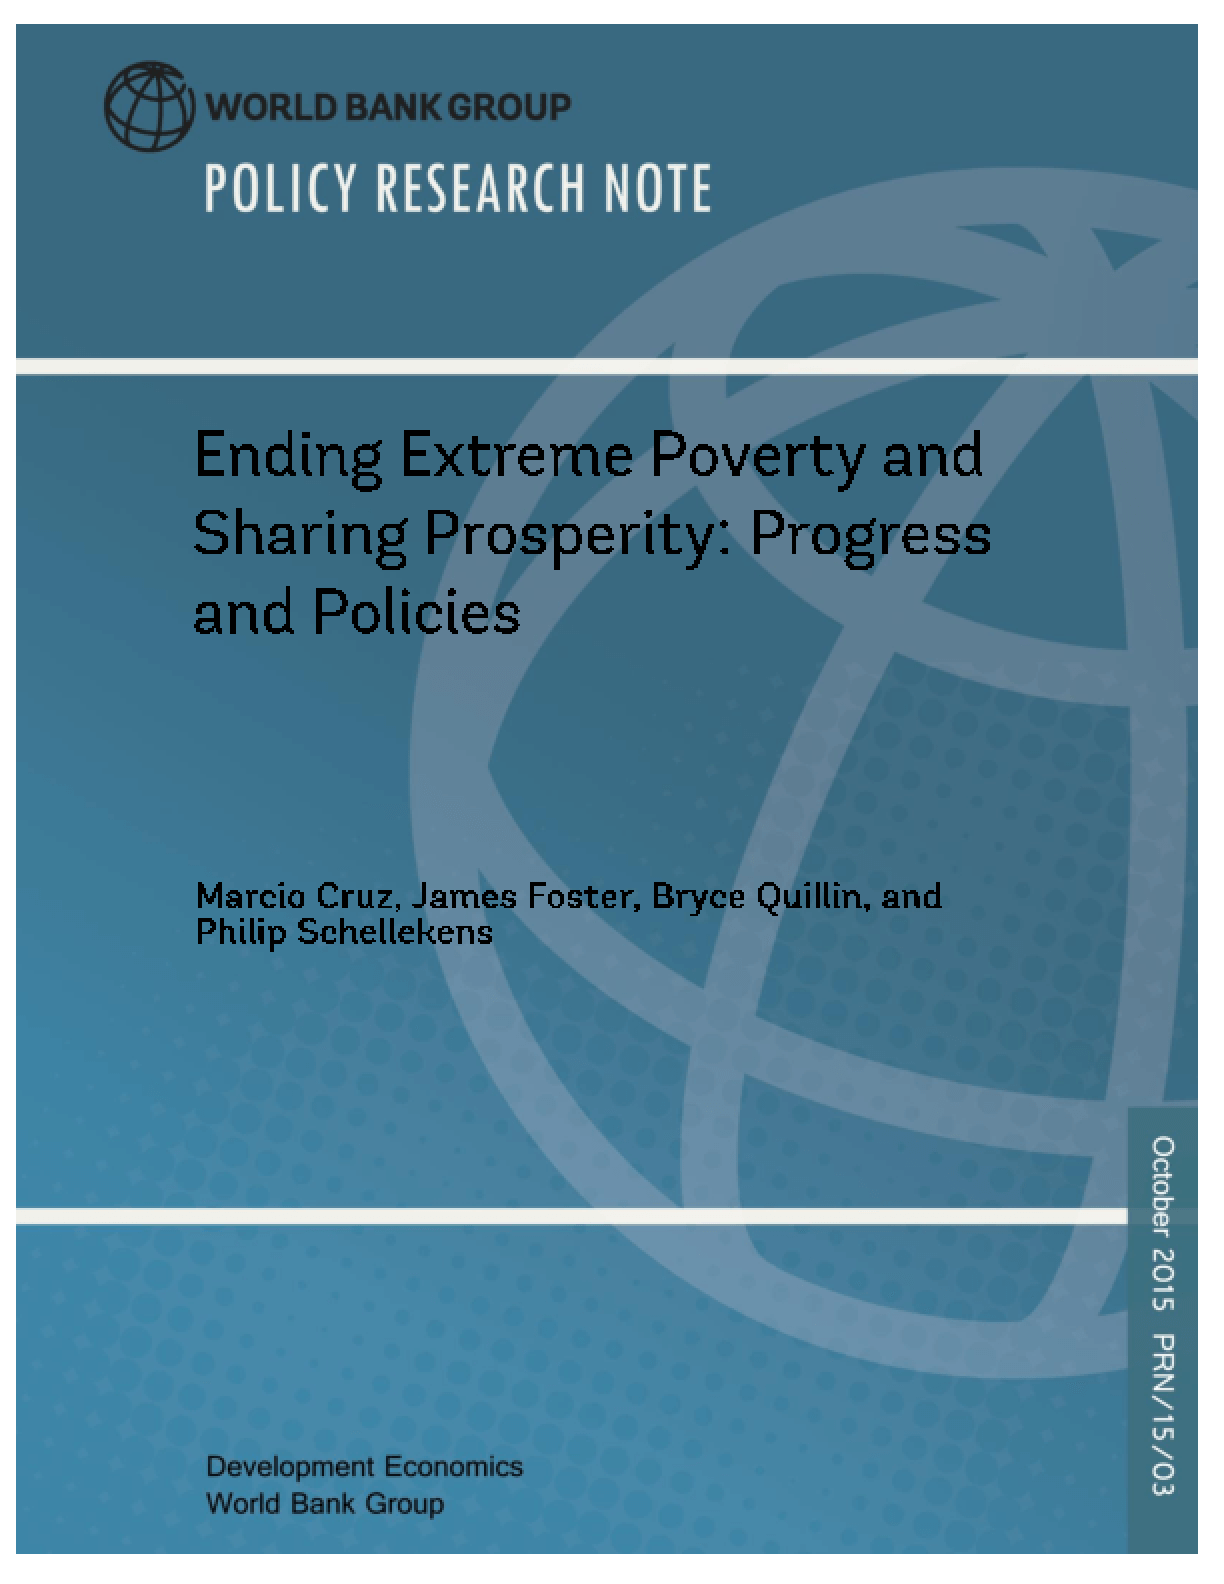 Ending Extreme Poverty and Sharing Prosperity: Progress and Policies